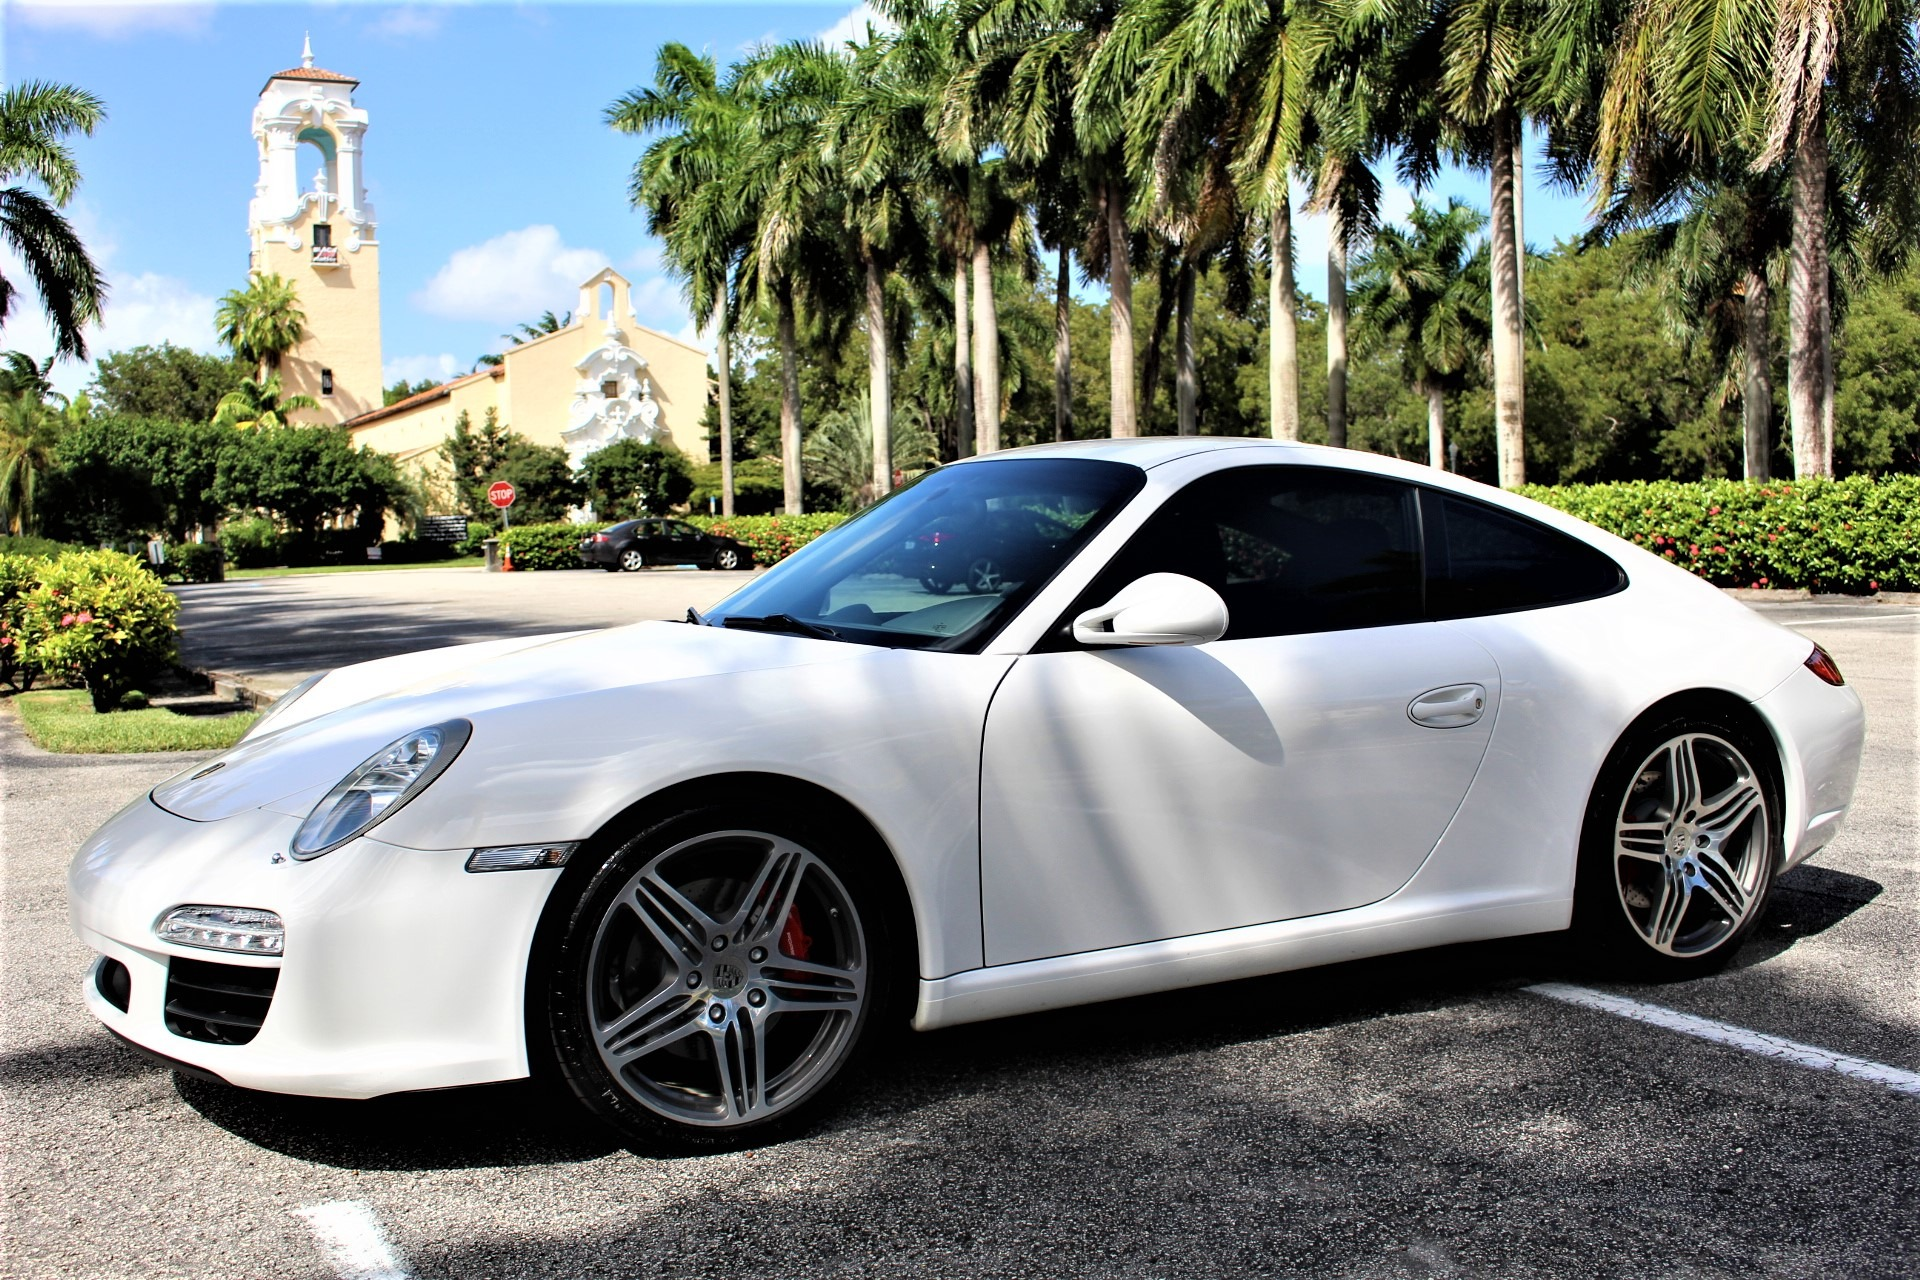 Used 2011 Porsche 911 Carrera S for sale Sold at The Gables Sports Cars in Miami FL 33146 3